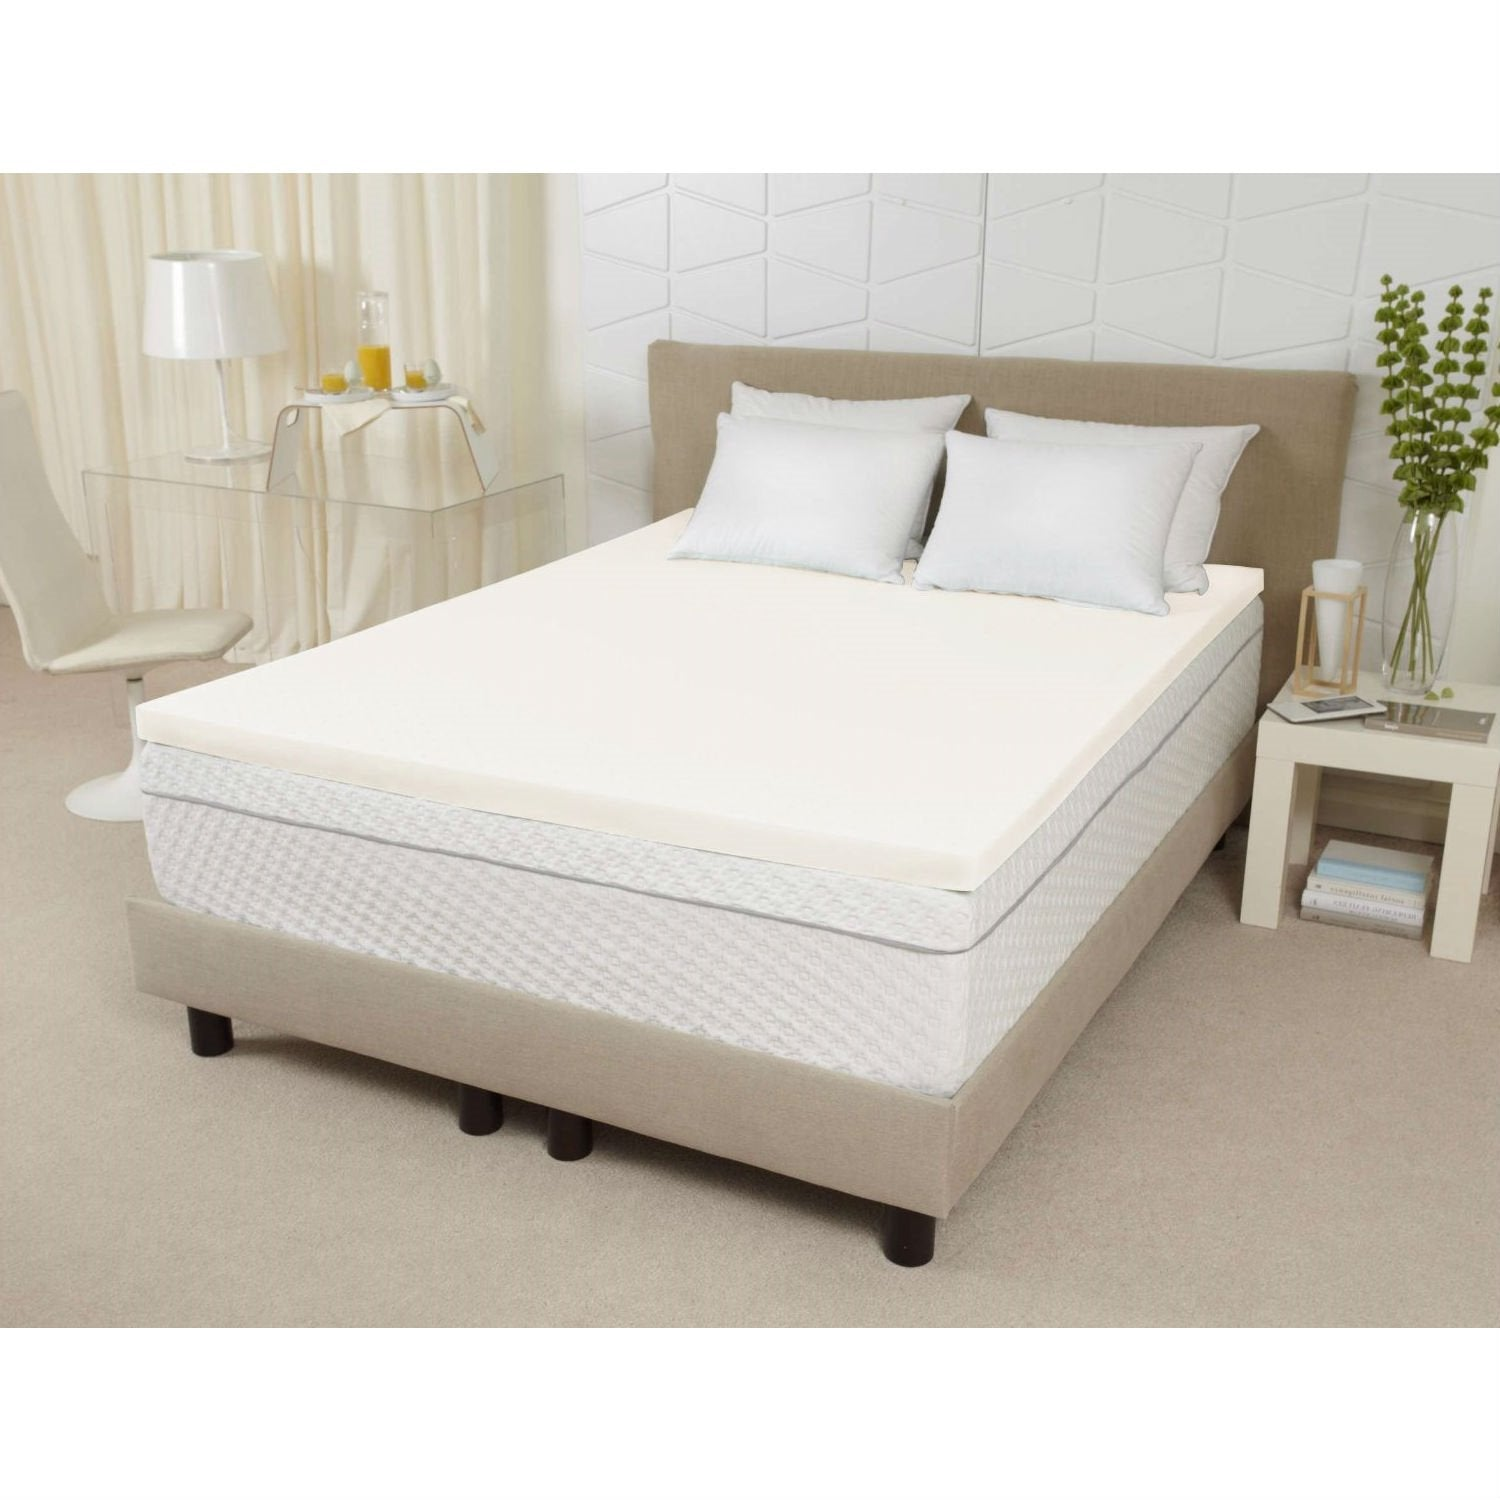 King size 3-inch Thick Ventilated Memory Foam Mattress Topper